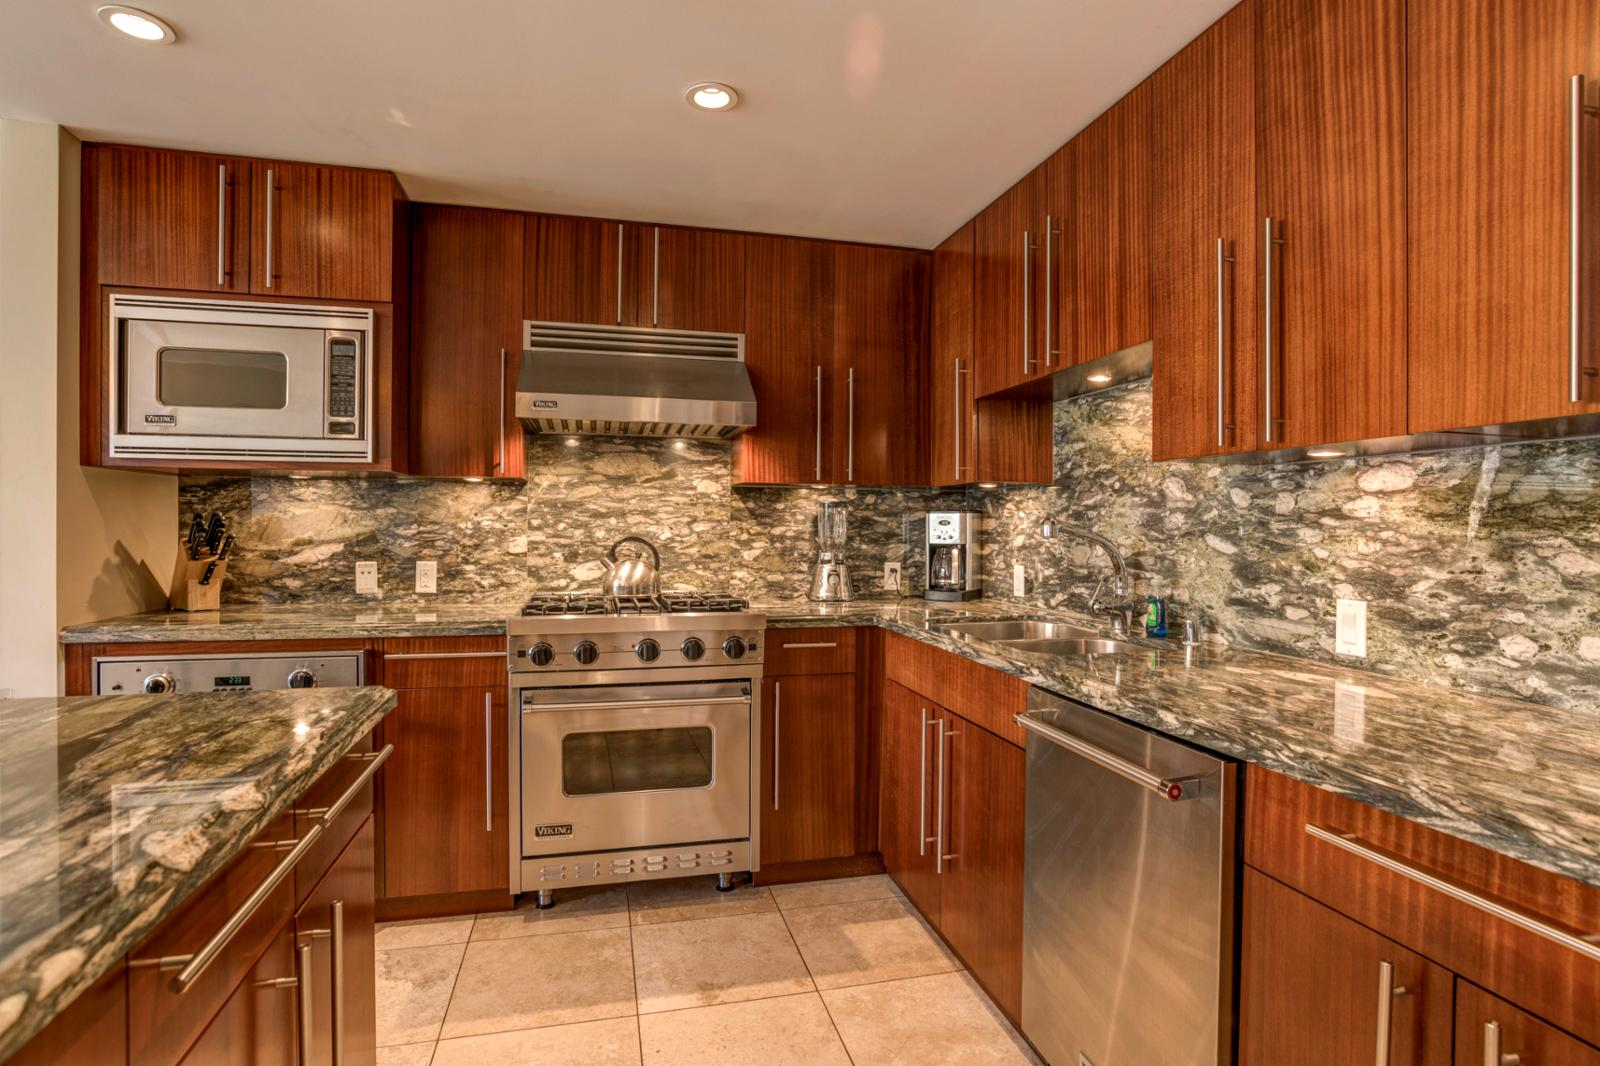 Stainless appliances throughout and overstocked with anything you will need